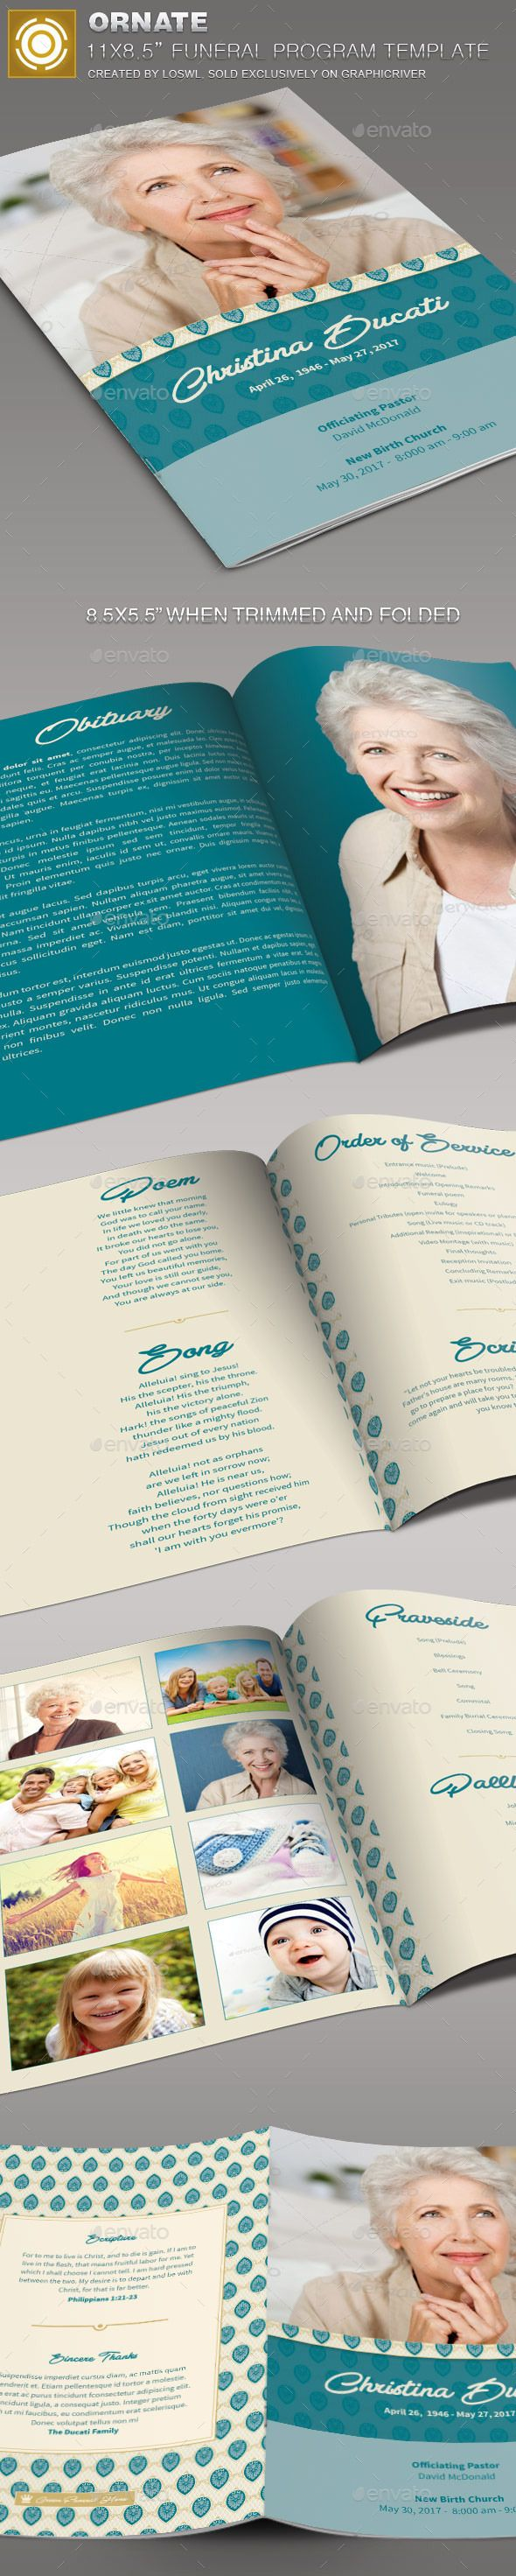 104 best images about funeral program templates on for Program brochure templates